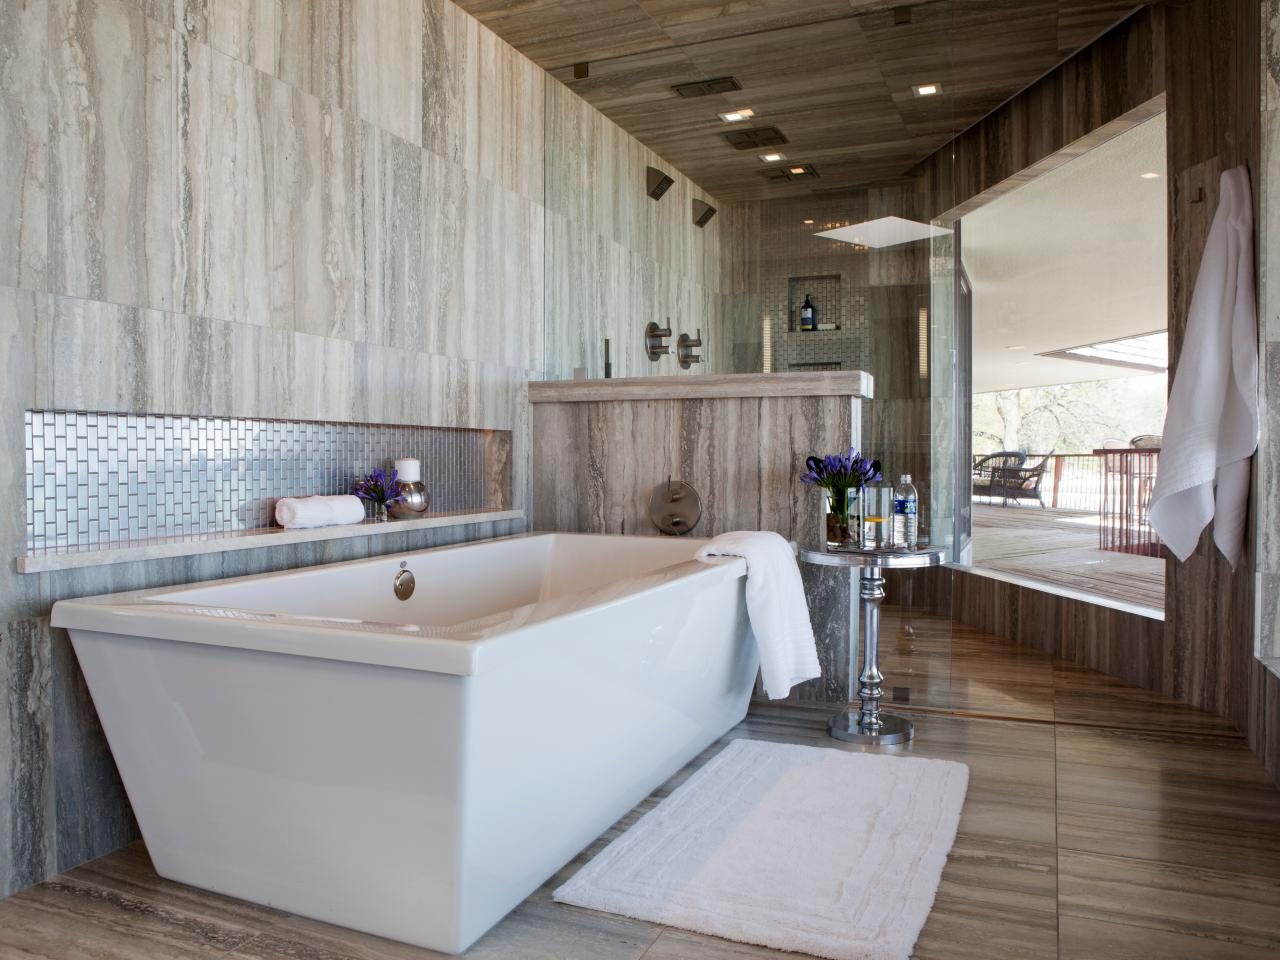 Contemporary bathrooms pictures ideas tips from hgtv for Full bathroom remodel